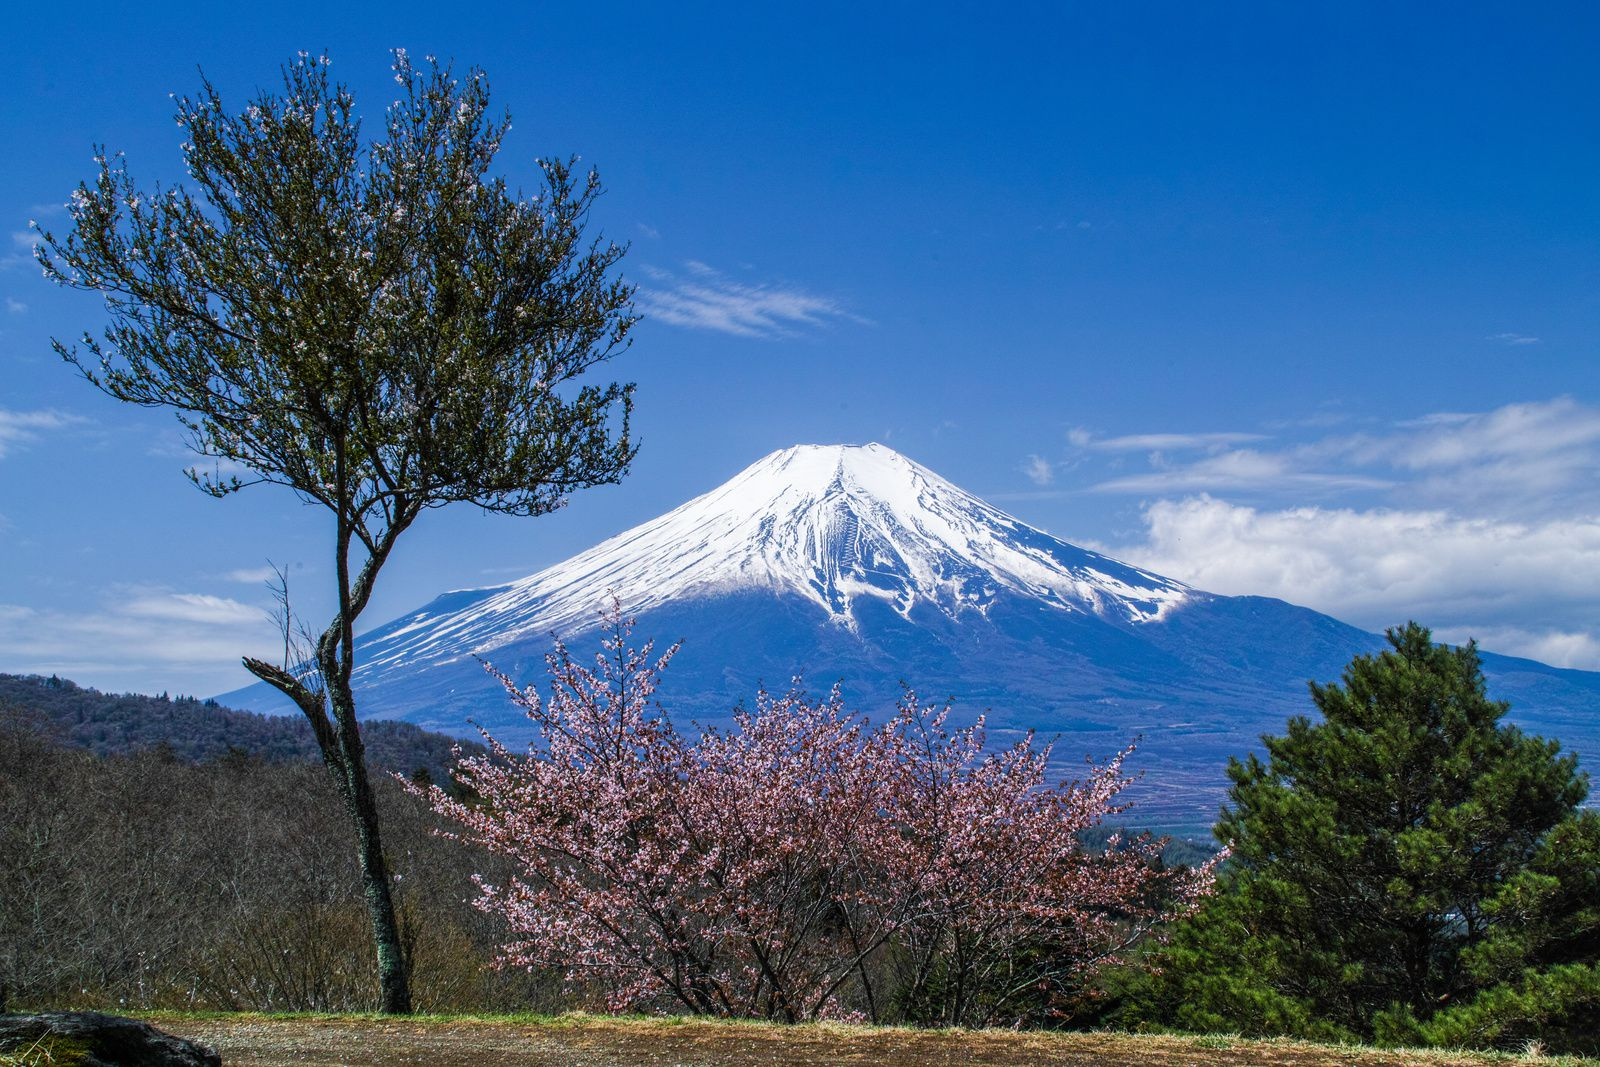 Le Mont Fuji : https://wall.alphacoders.com/tags.php?tid=22523&lang=French